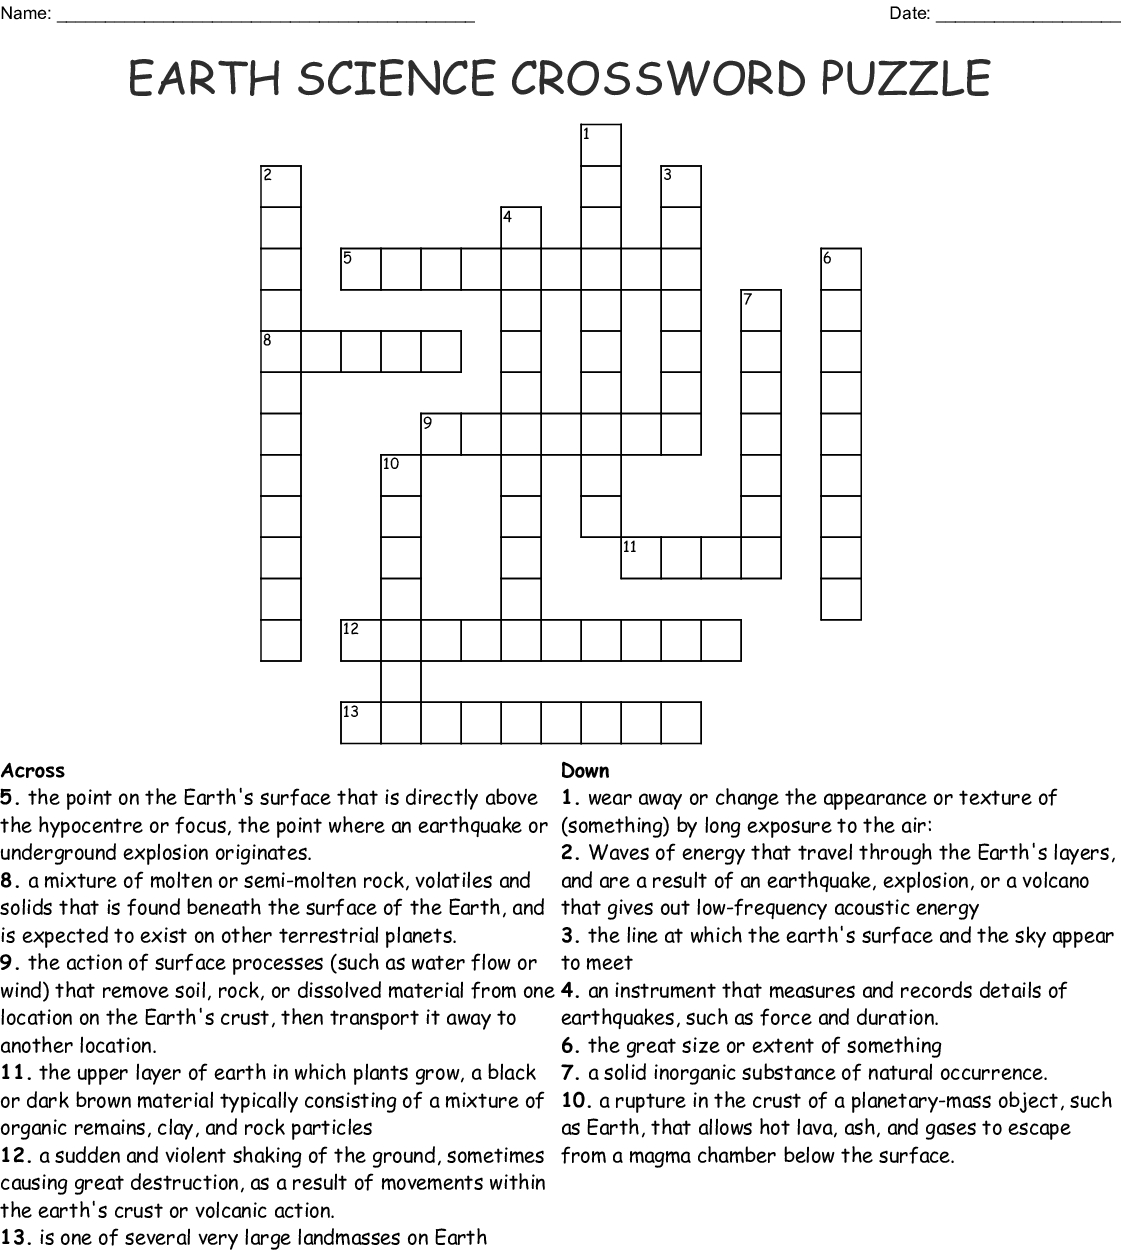 Earth Science Crossword Puzzle Crossword - Wordmint - Printable Crossword Puzzles Science